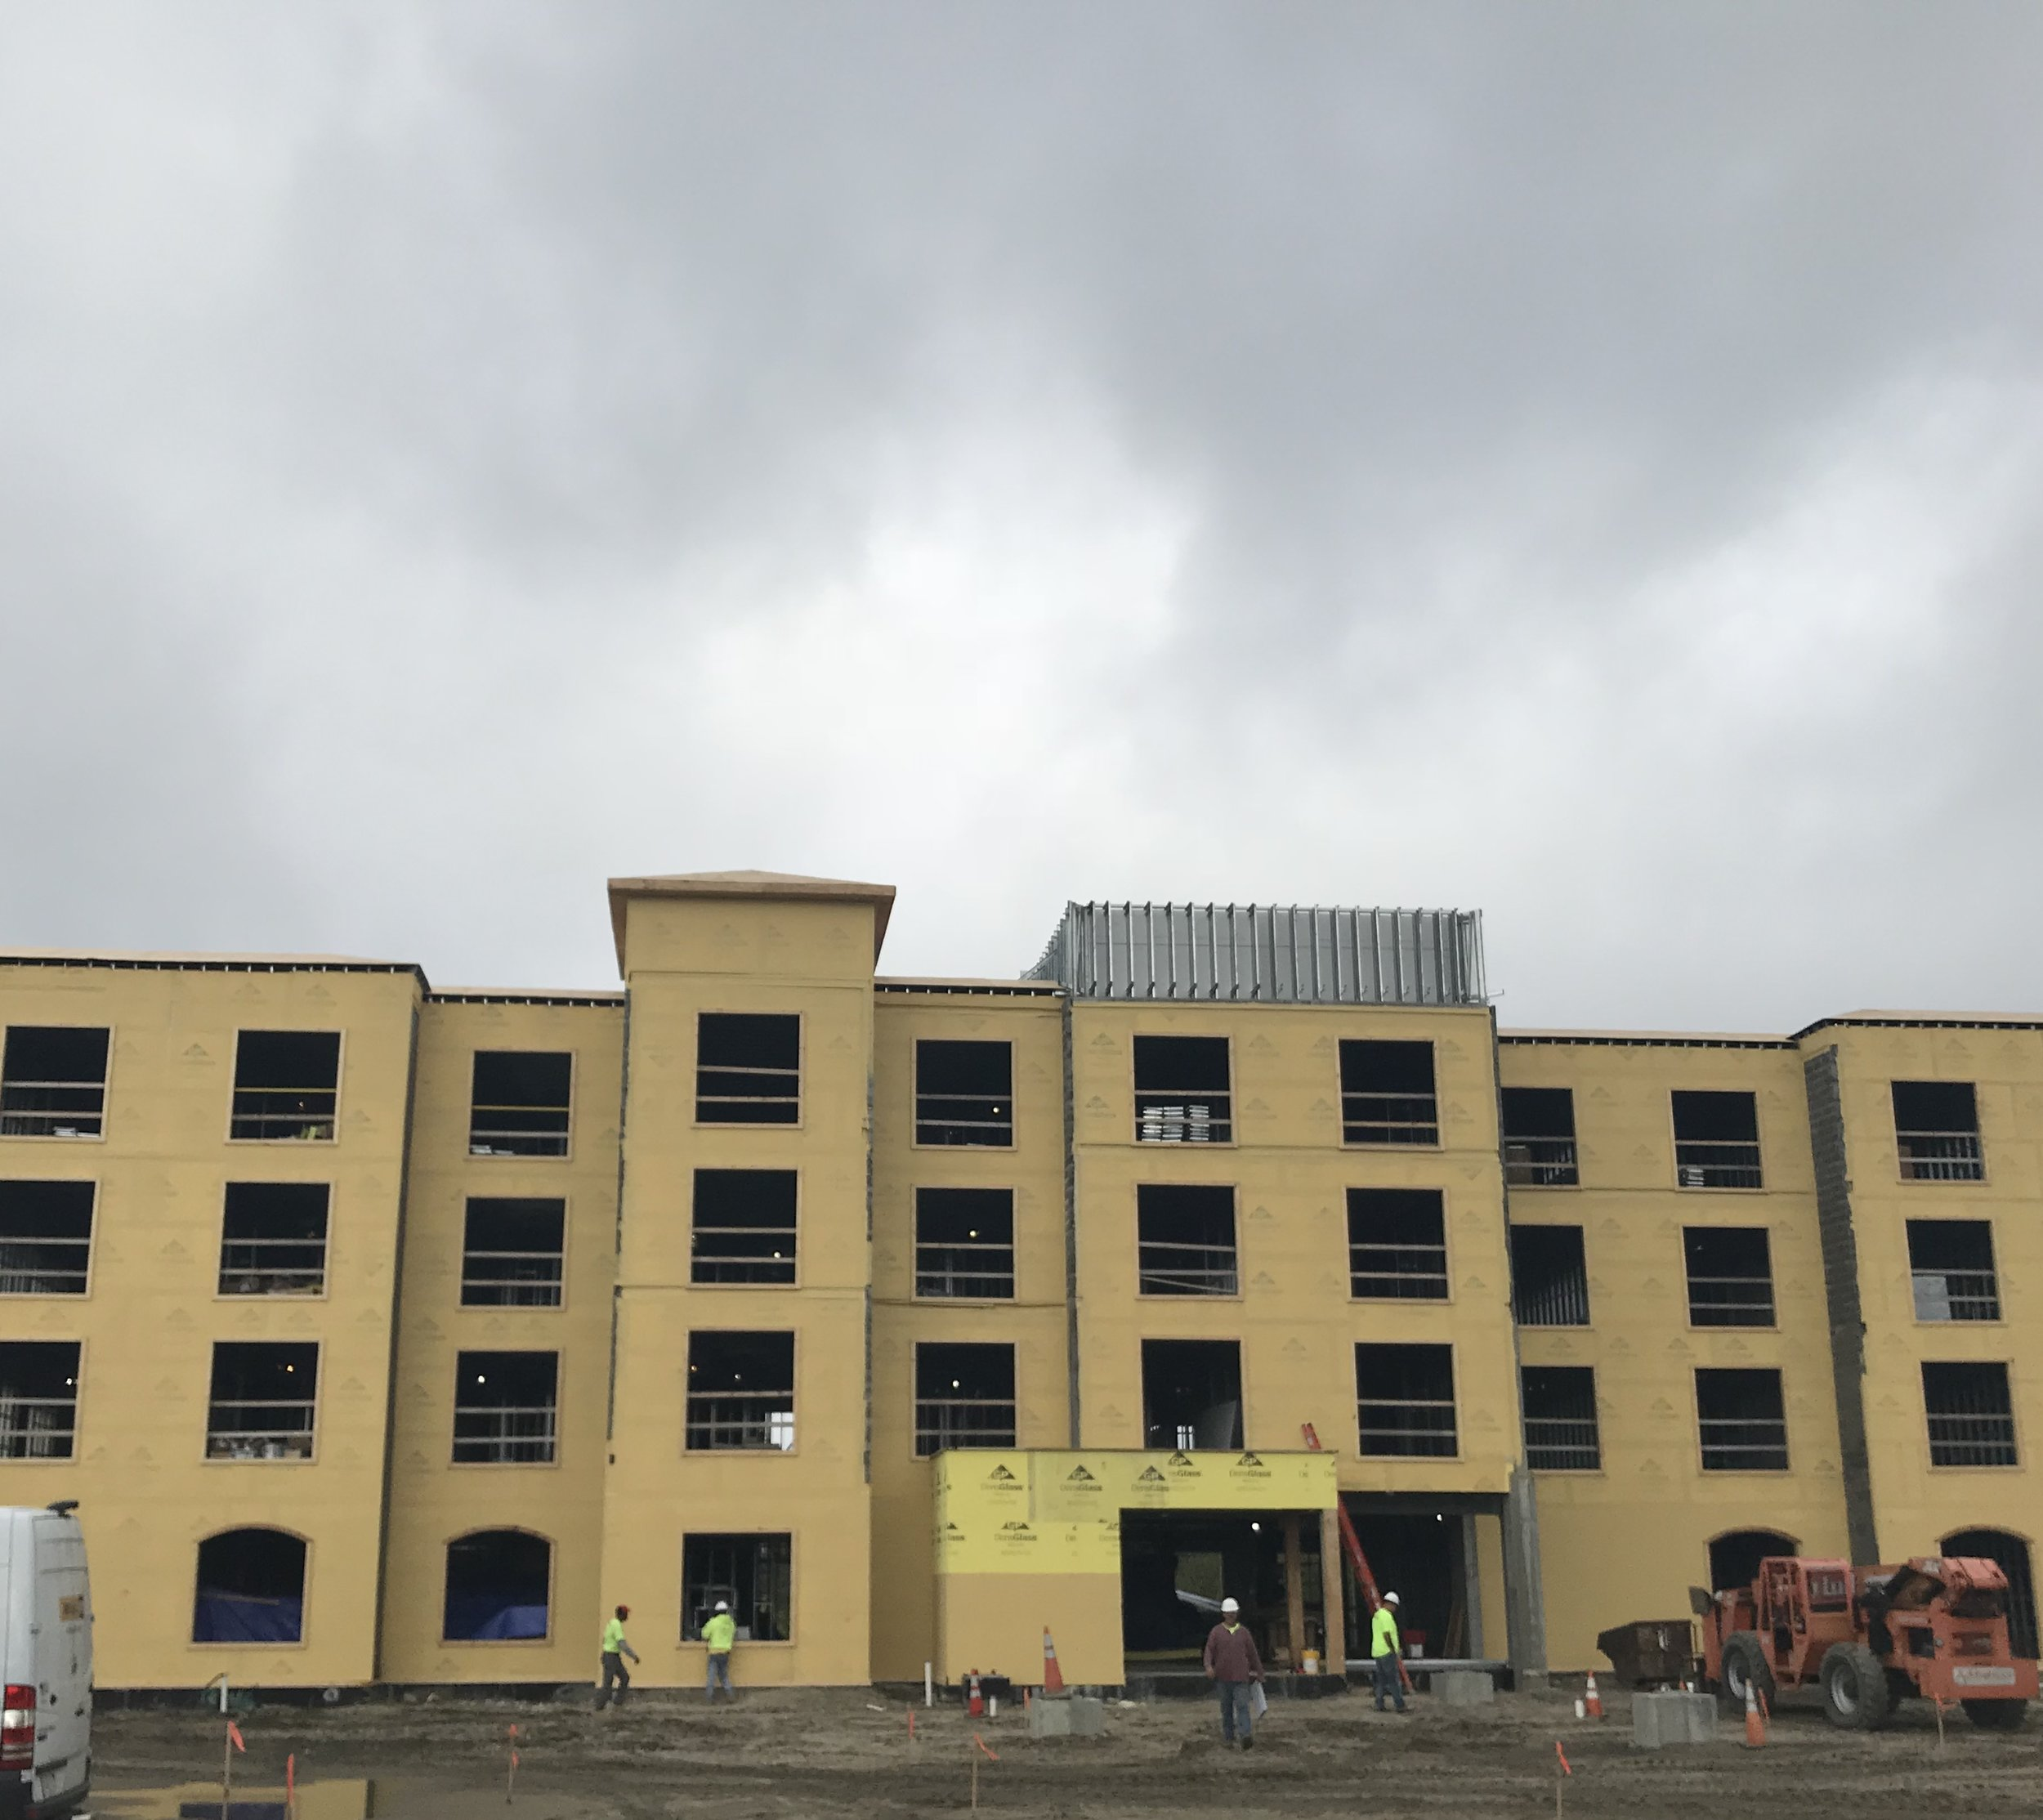 Fairfield Inn & Suites  South Kingston, RI CFS Roof Trusses Contractor: Baystate Drywall